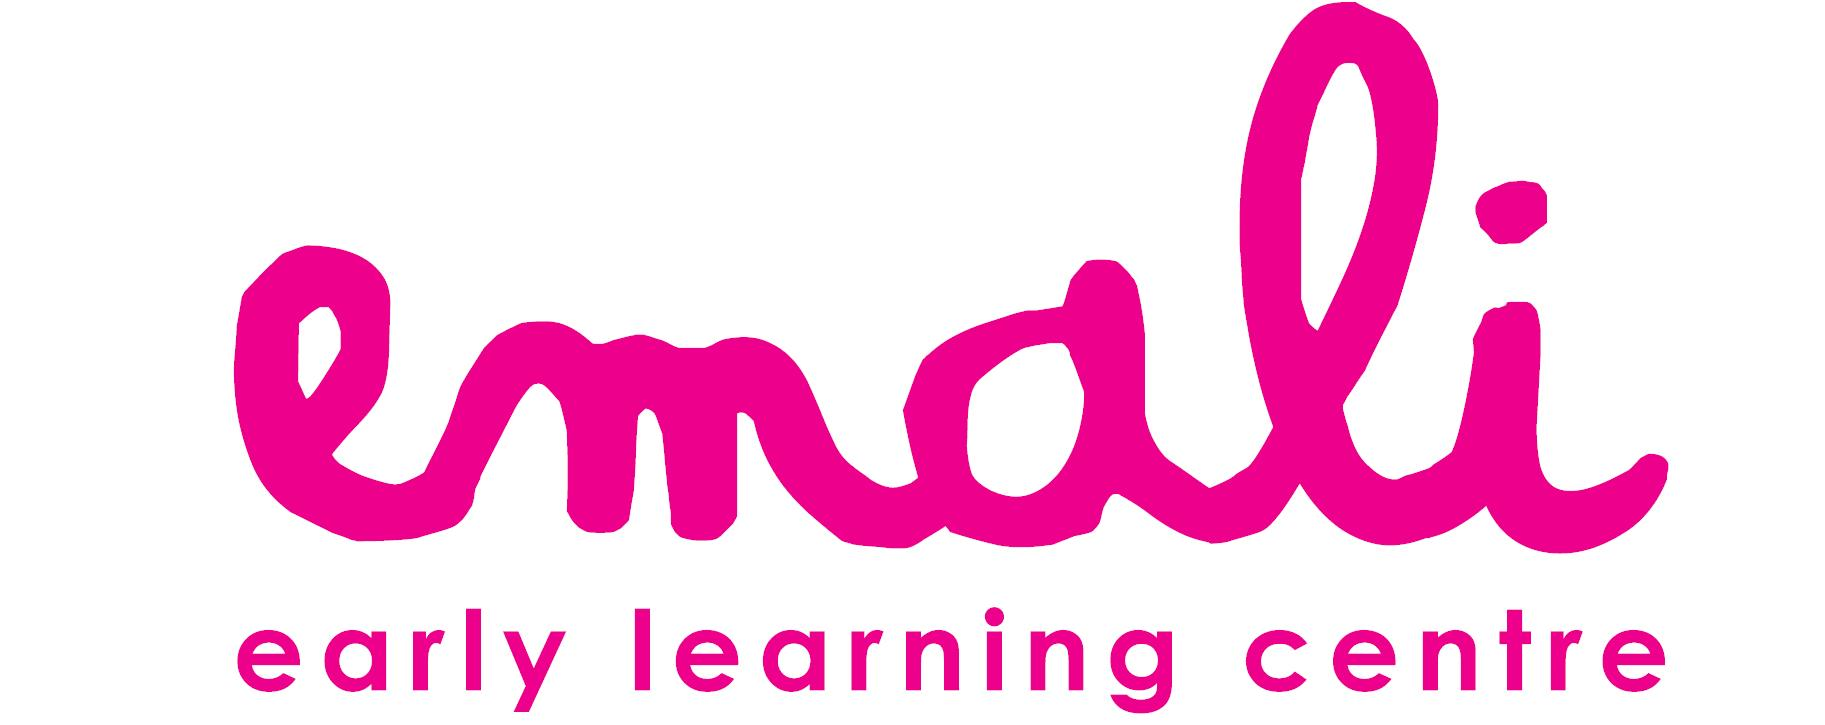 Emali Early Learning Centre